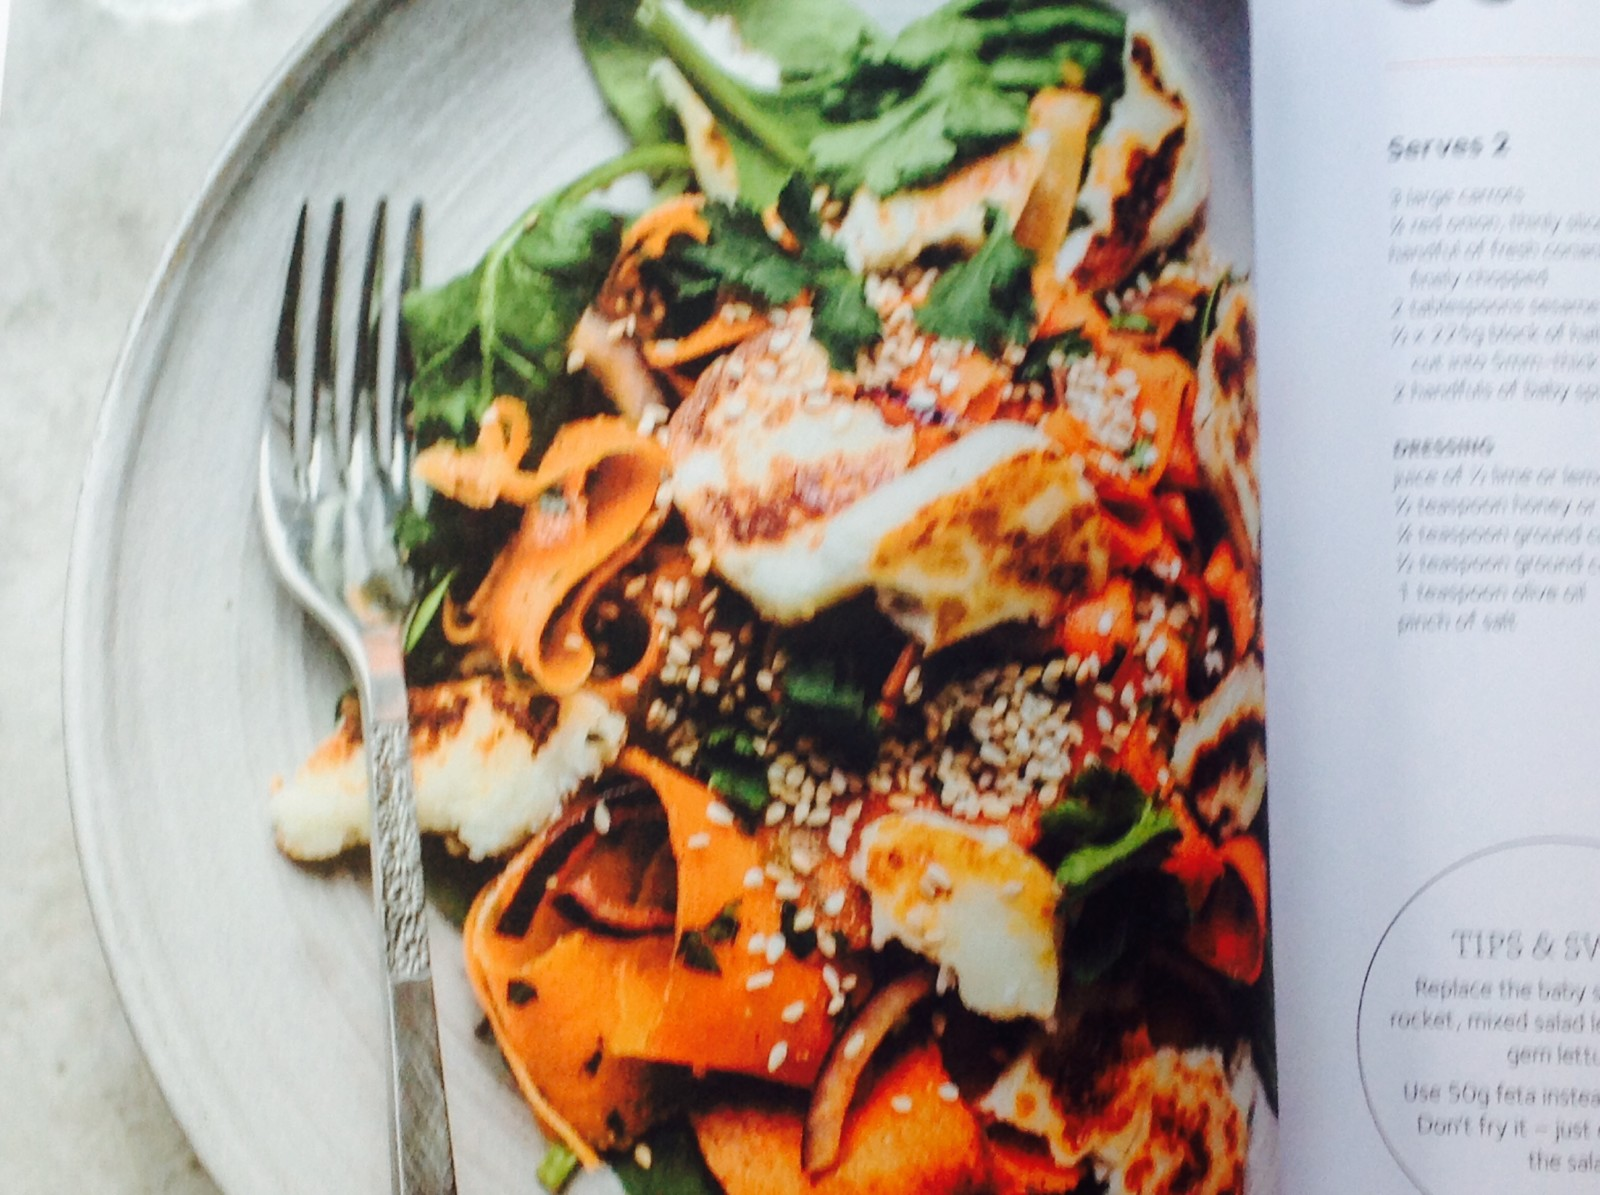 Carrot ribbon and halloumi salad